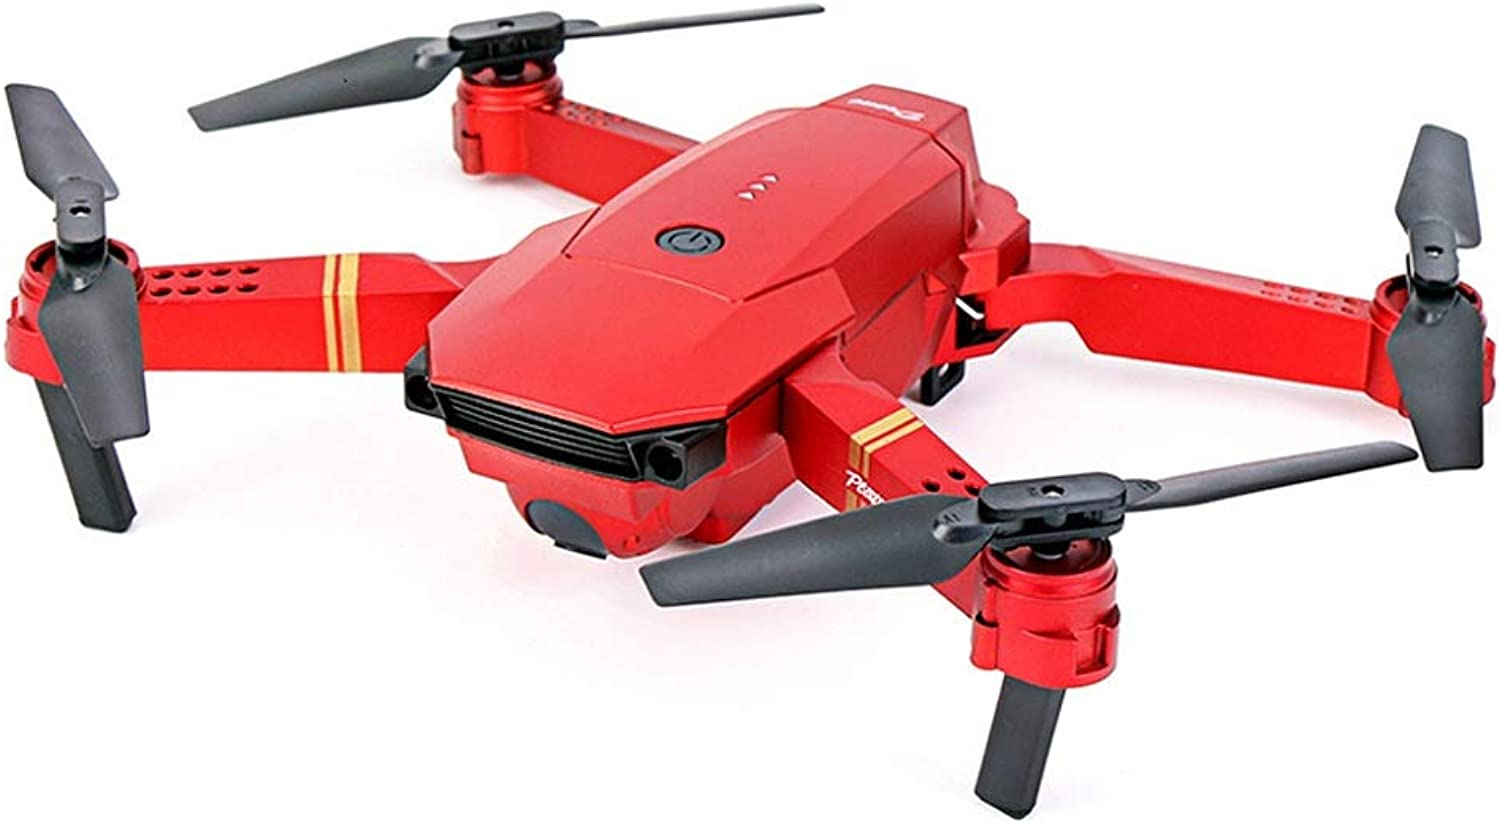 Drone X pro, ASTV E58 5.0MP (1080P) HD Camera WiFi FPV Foldable